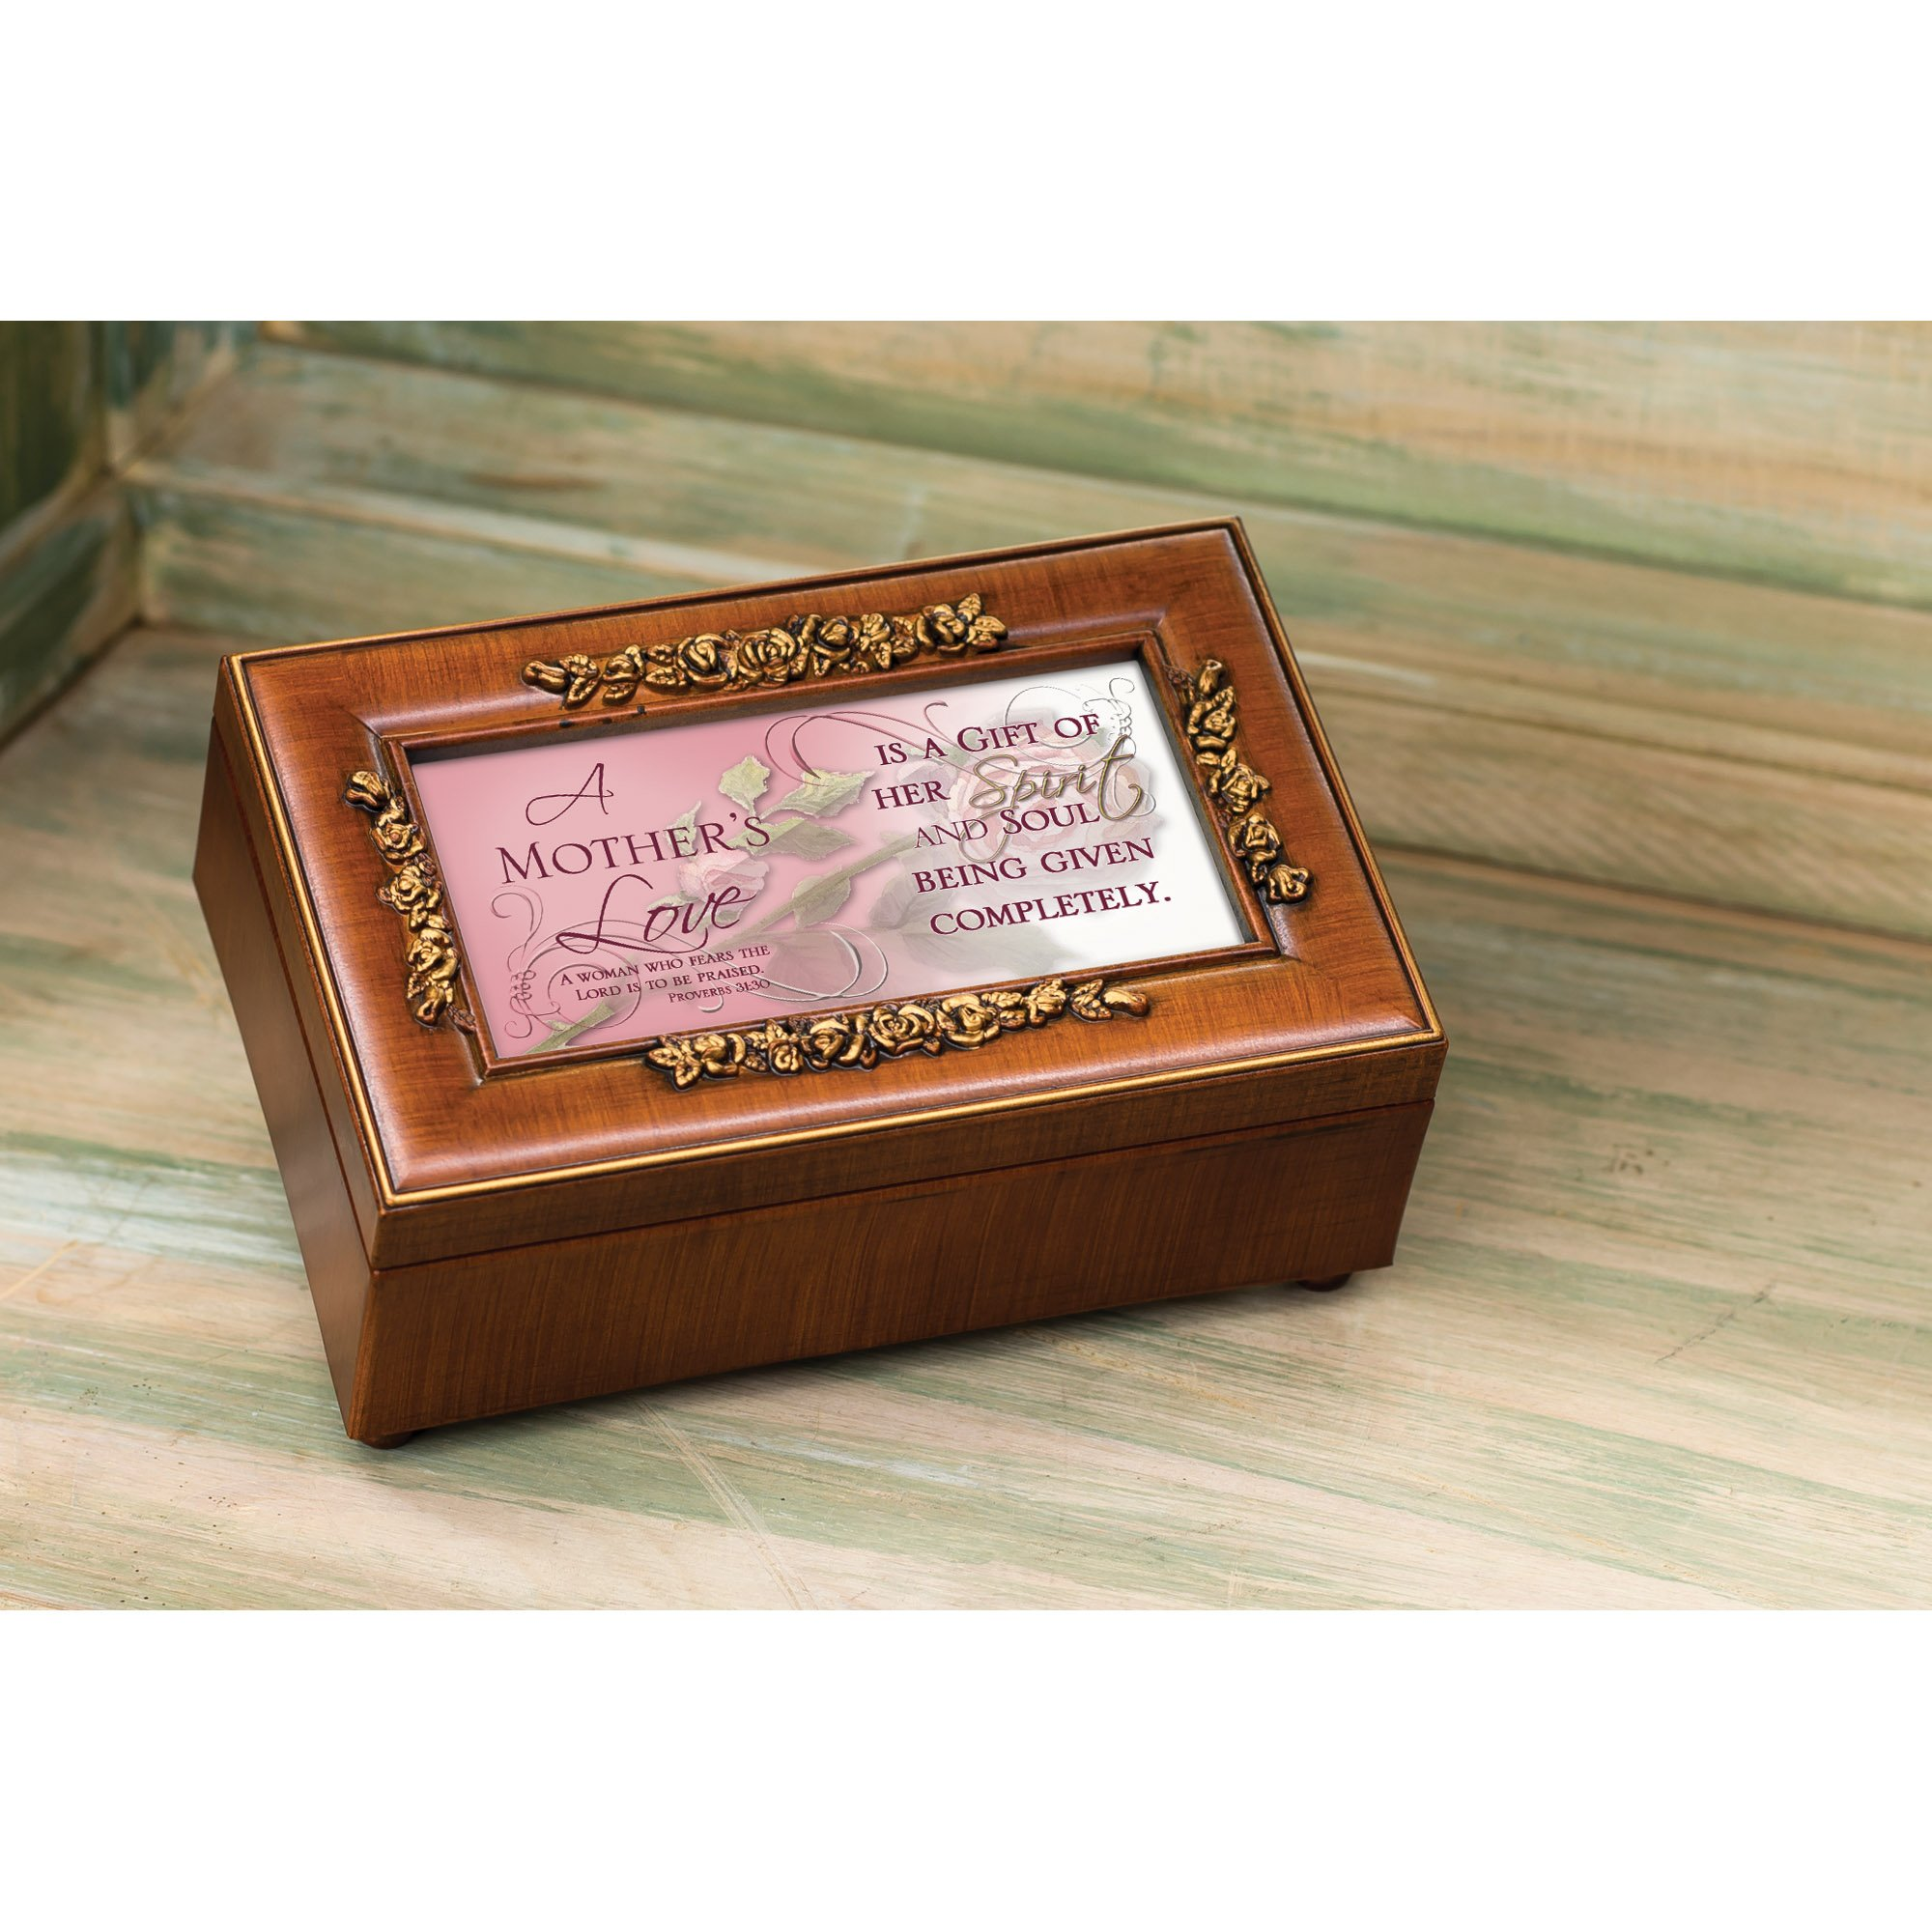 Cottage Garden Mother's Love Inspirational Decorative Woodgrain Rose Music Box - Plays How Great Thou Art by Cottage Garden (Image #5)